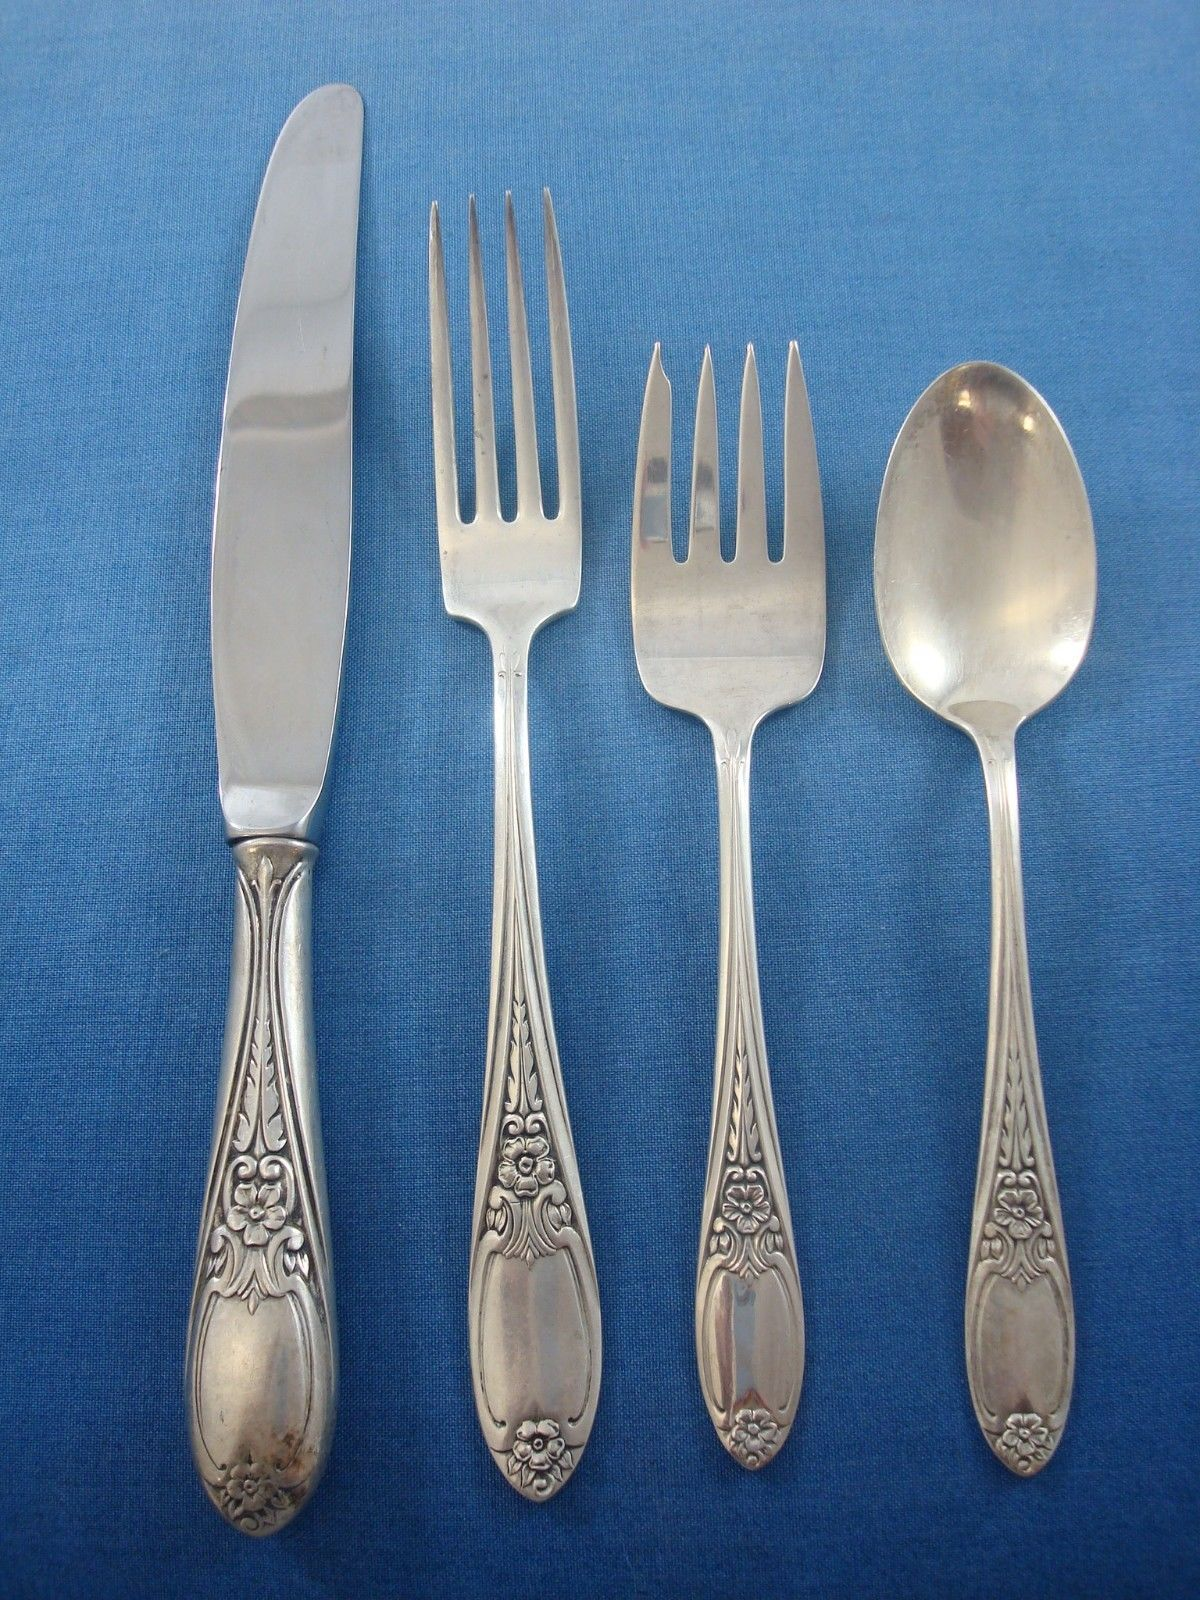 Colonial Rose by Amston Sterling Silver Flatware Set for 8 Service 48 Pieces